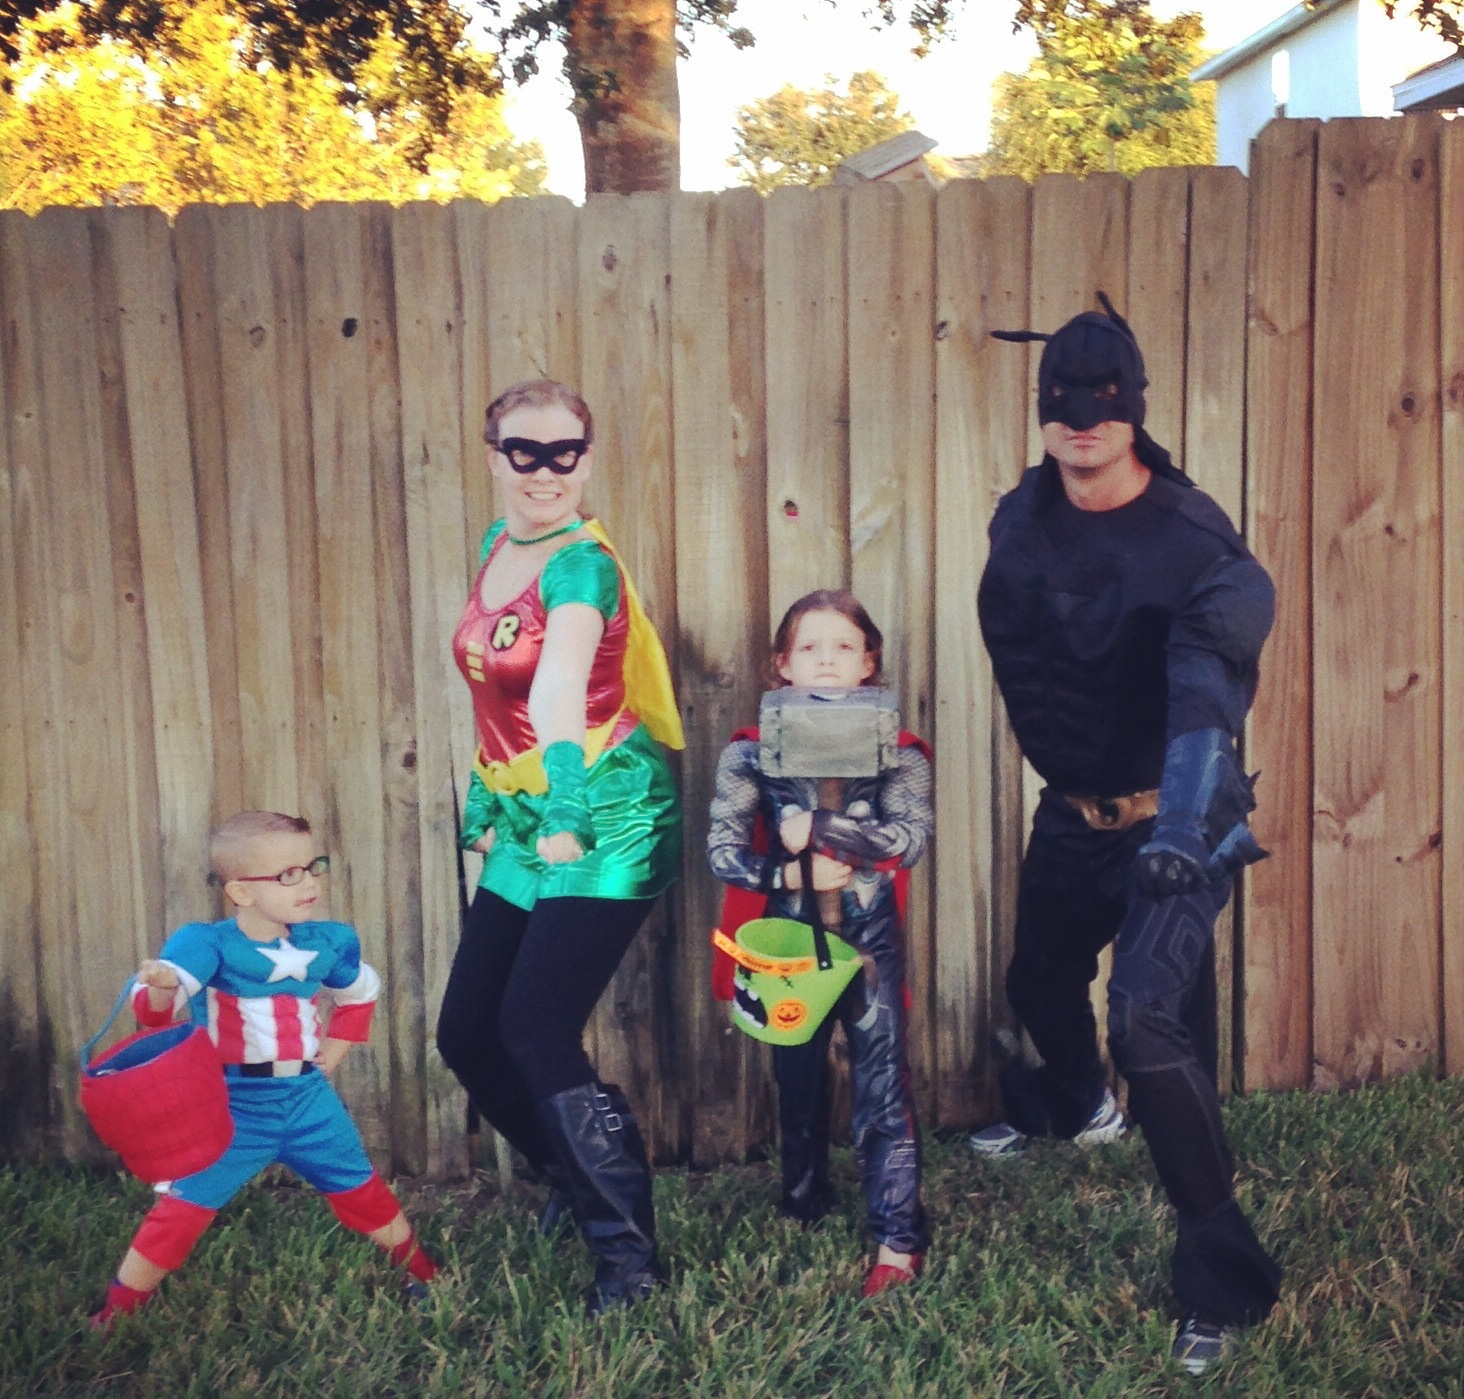 Superhero family